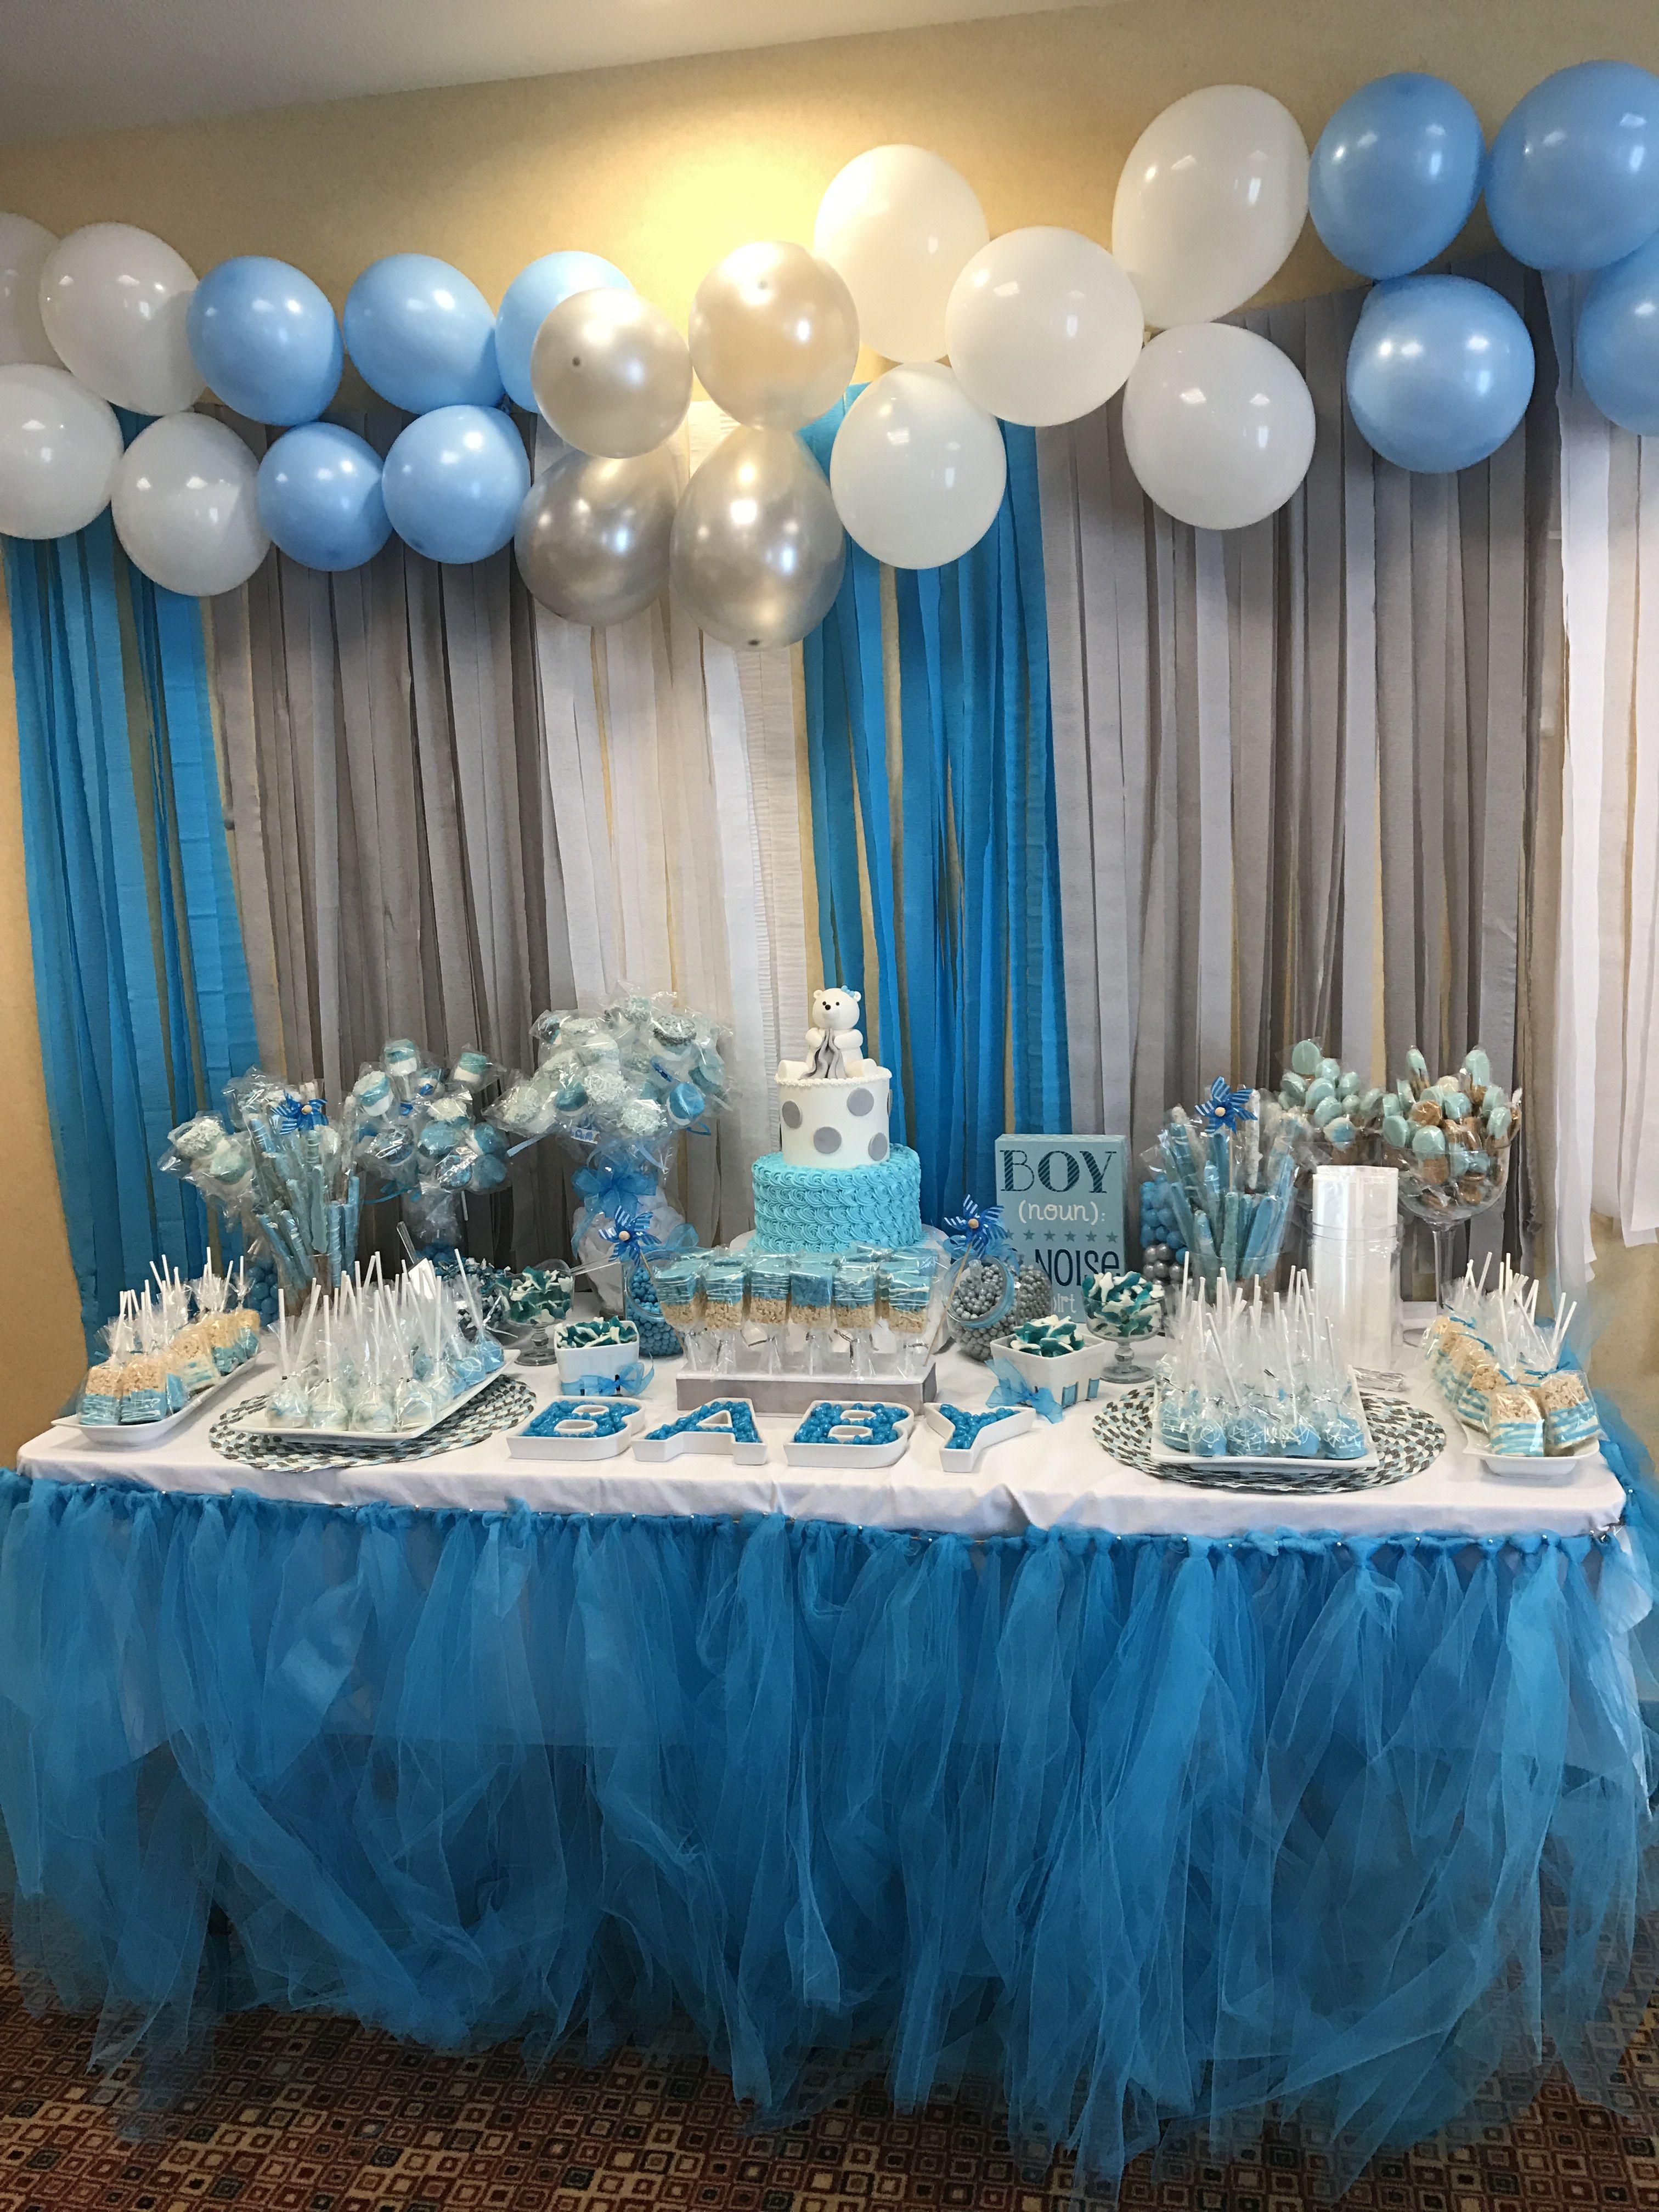 Baby Boy Baby Shower  DIYParty Time in 2019  Baby